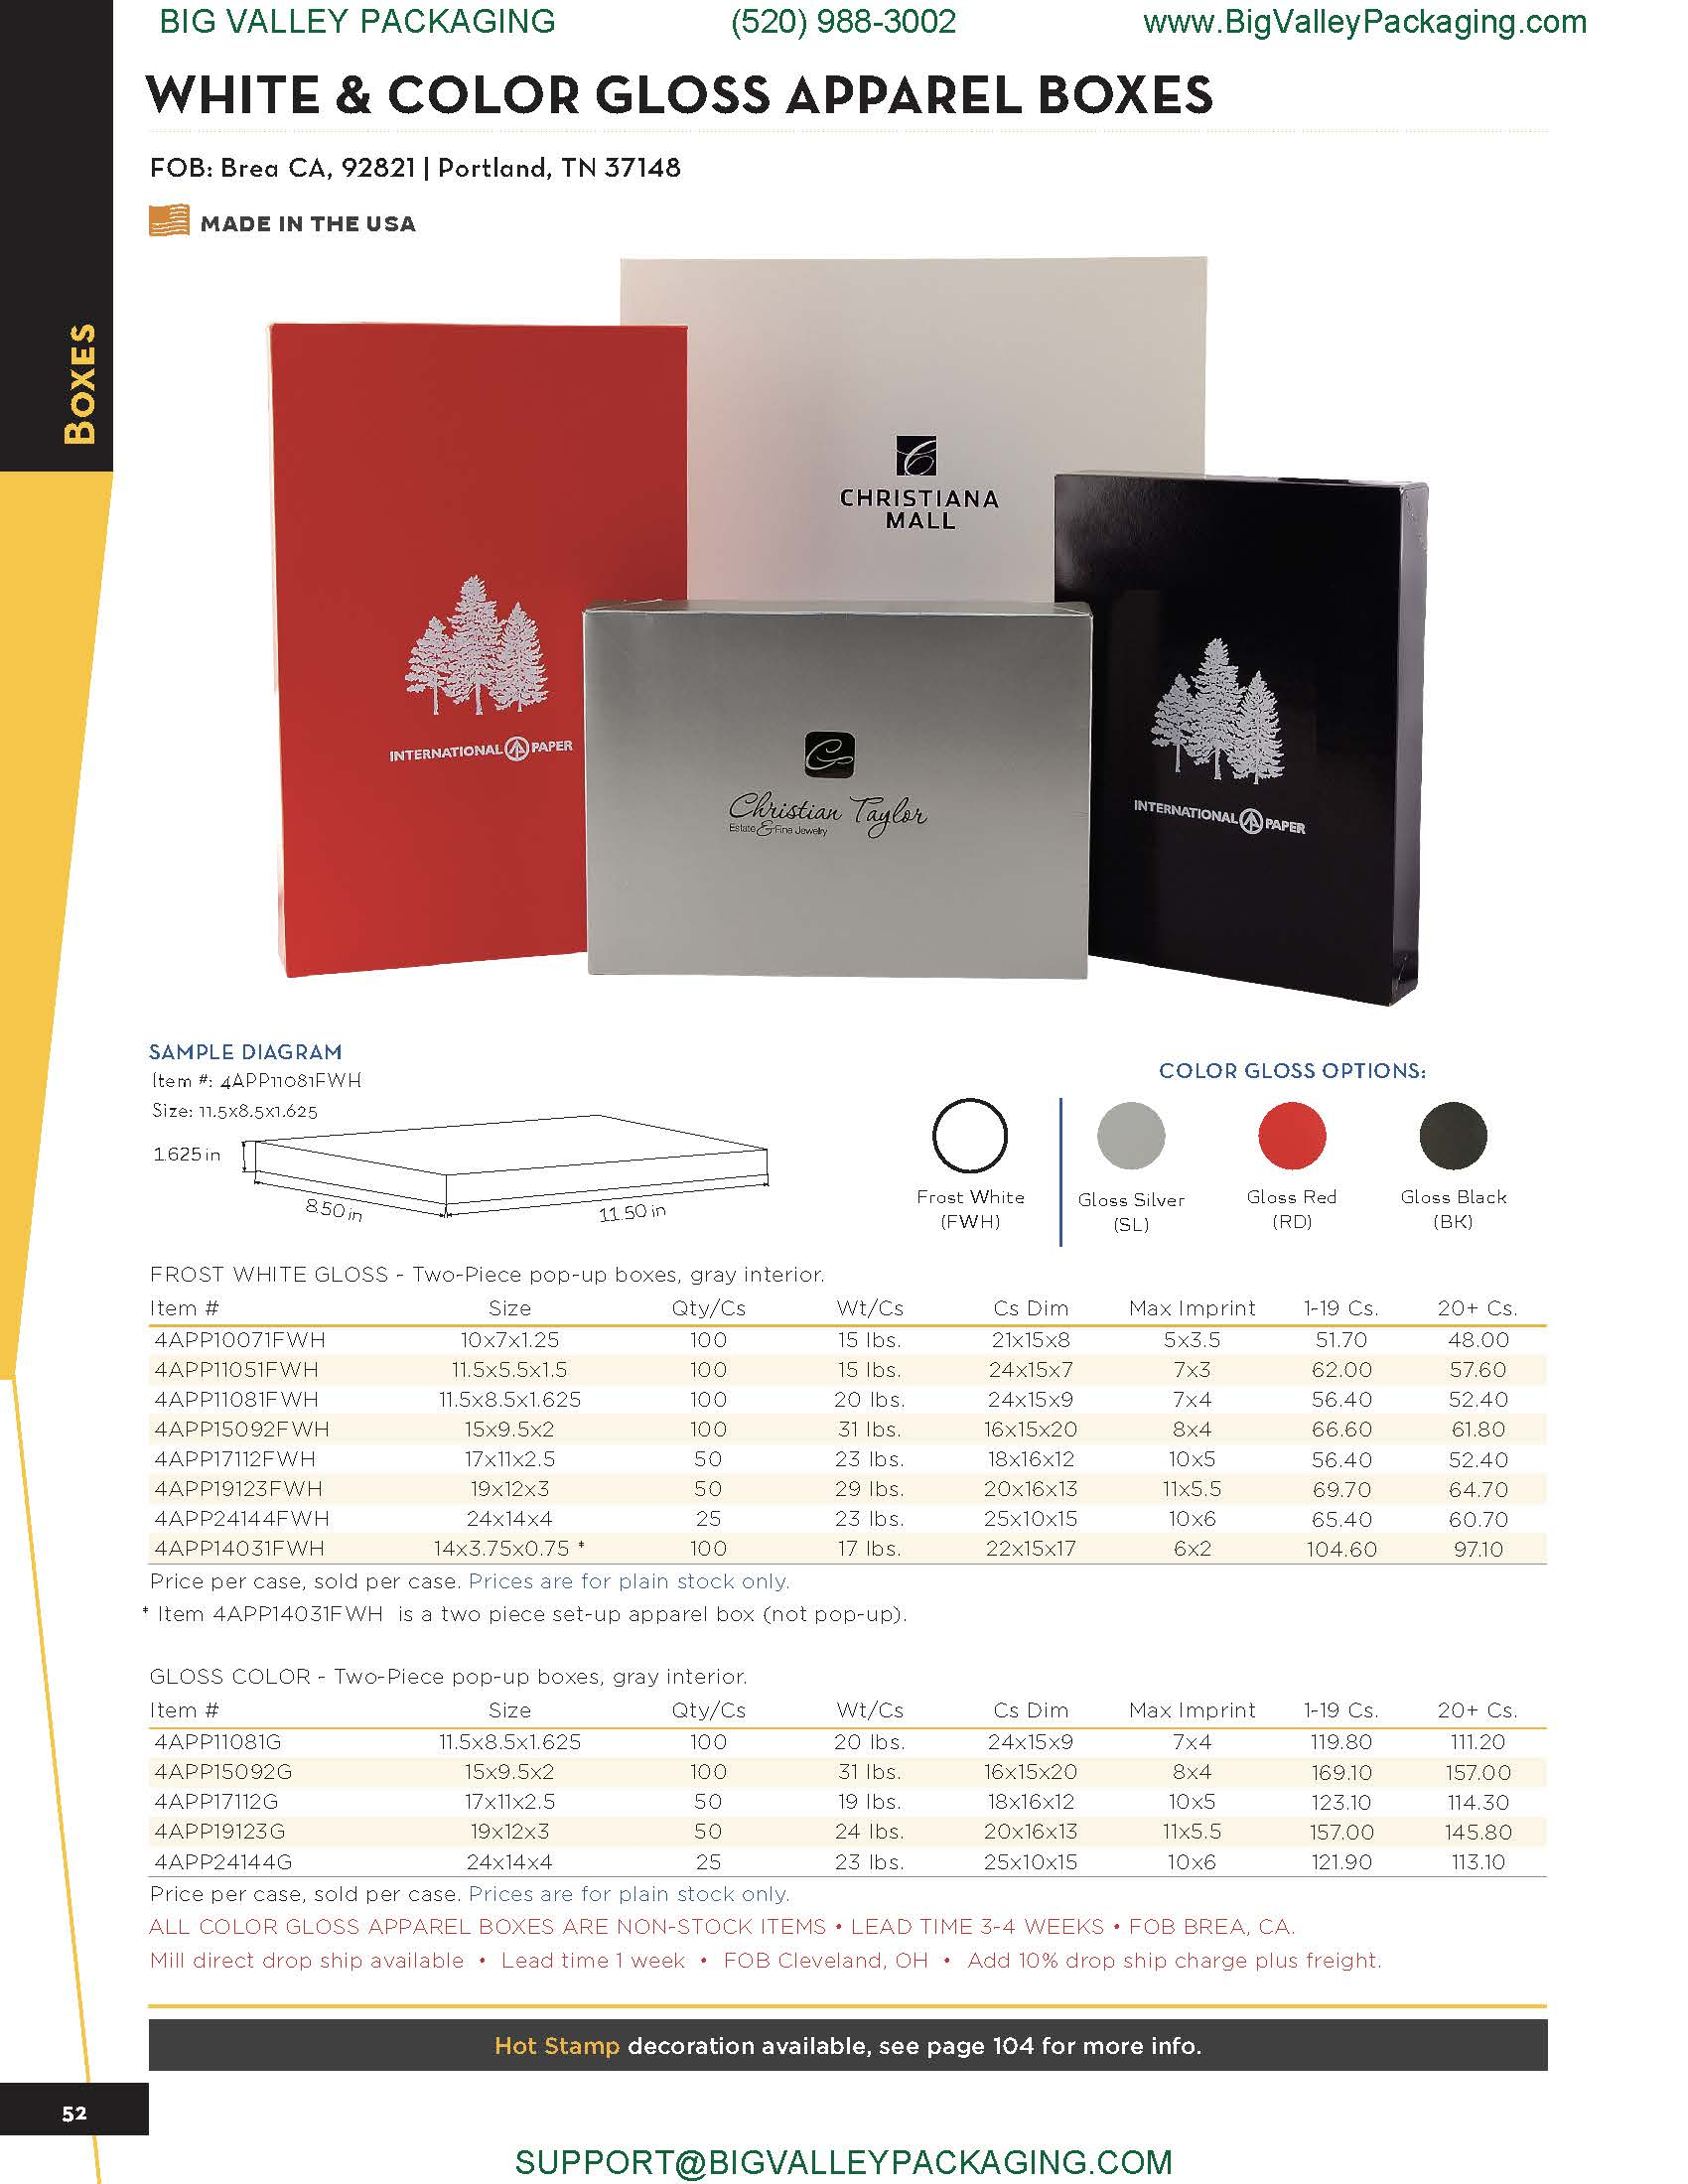 WHITE & COLOR GLOSS LOGO PRINTED APPAREL BOXES